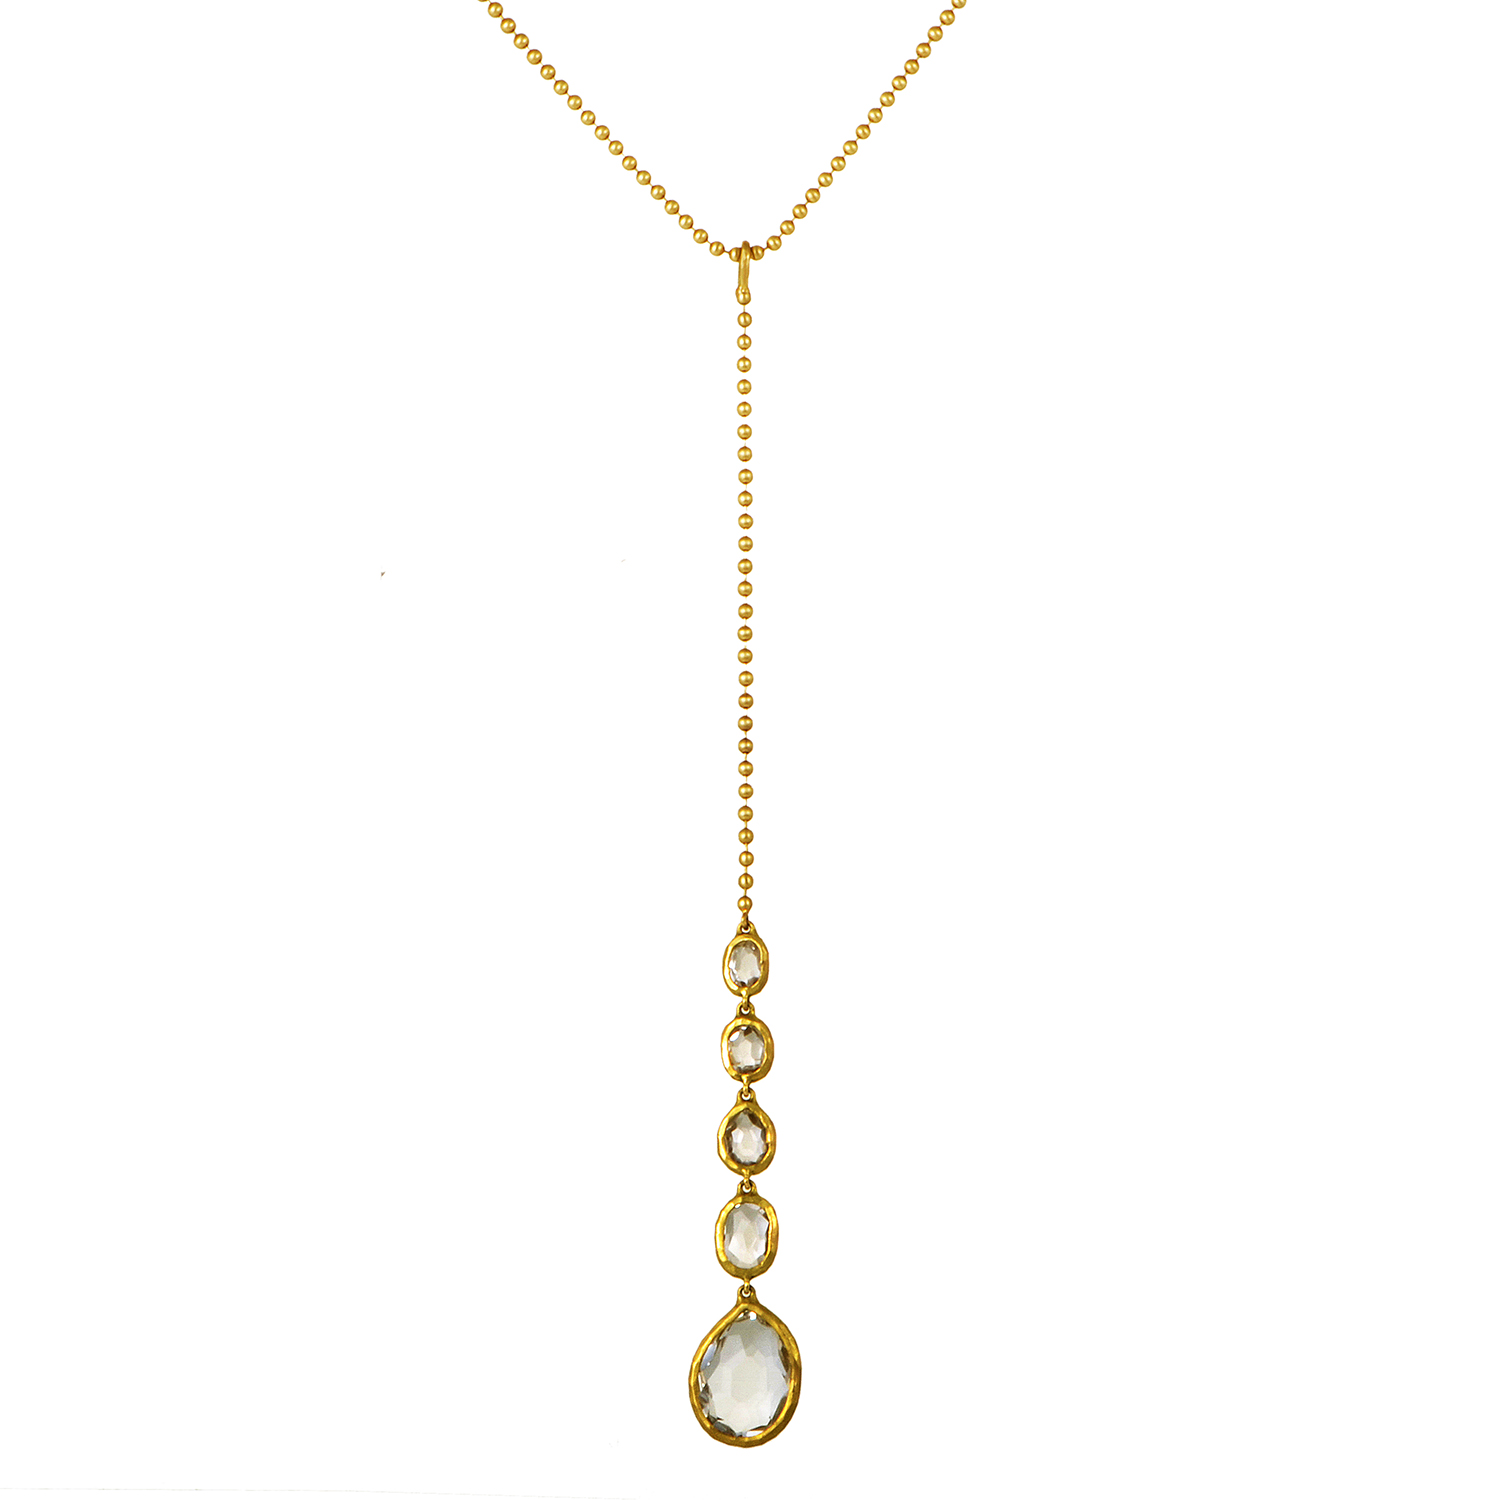 Women's 18K Yellow Gold Long White Topaz Pendant Necklace